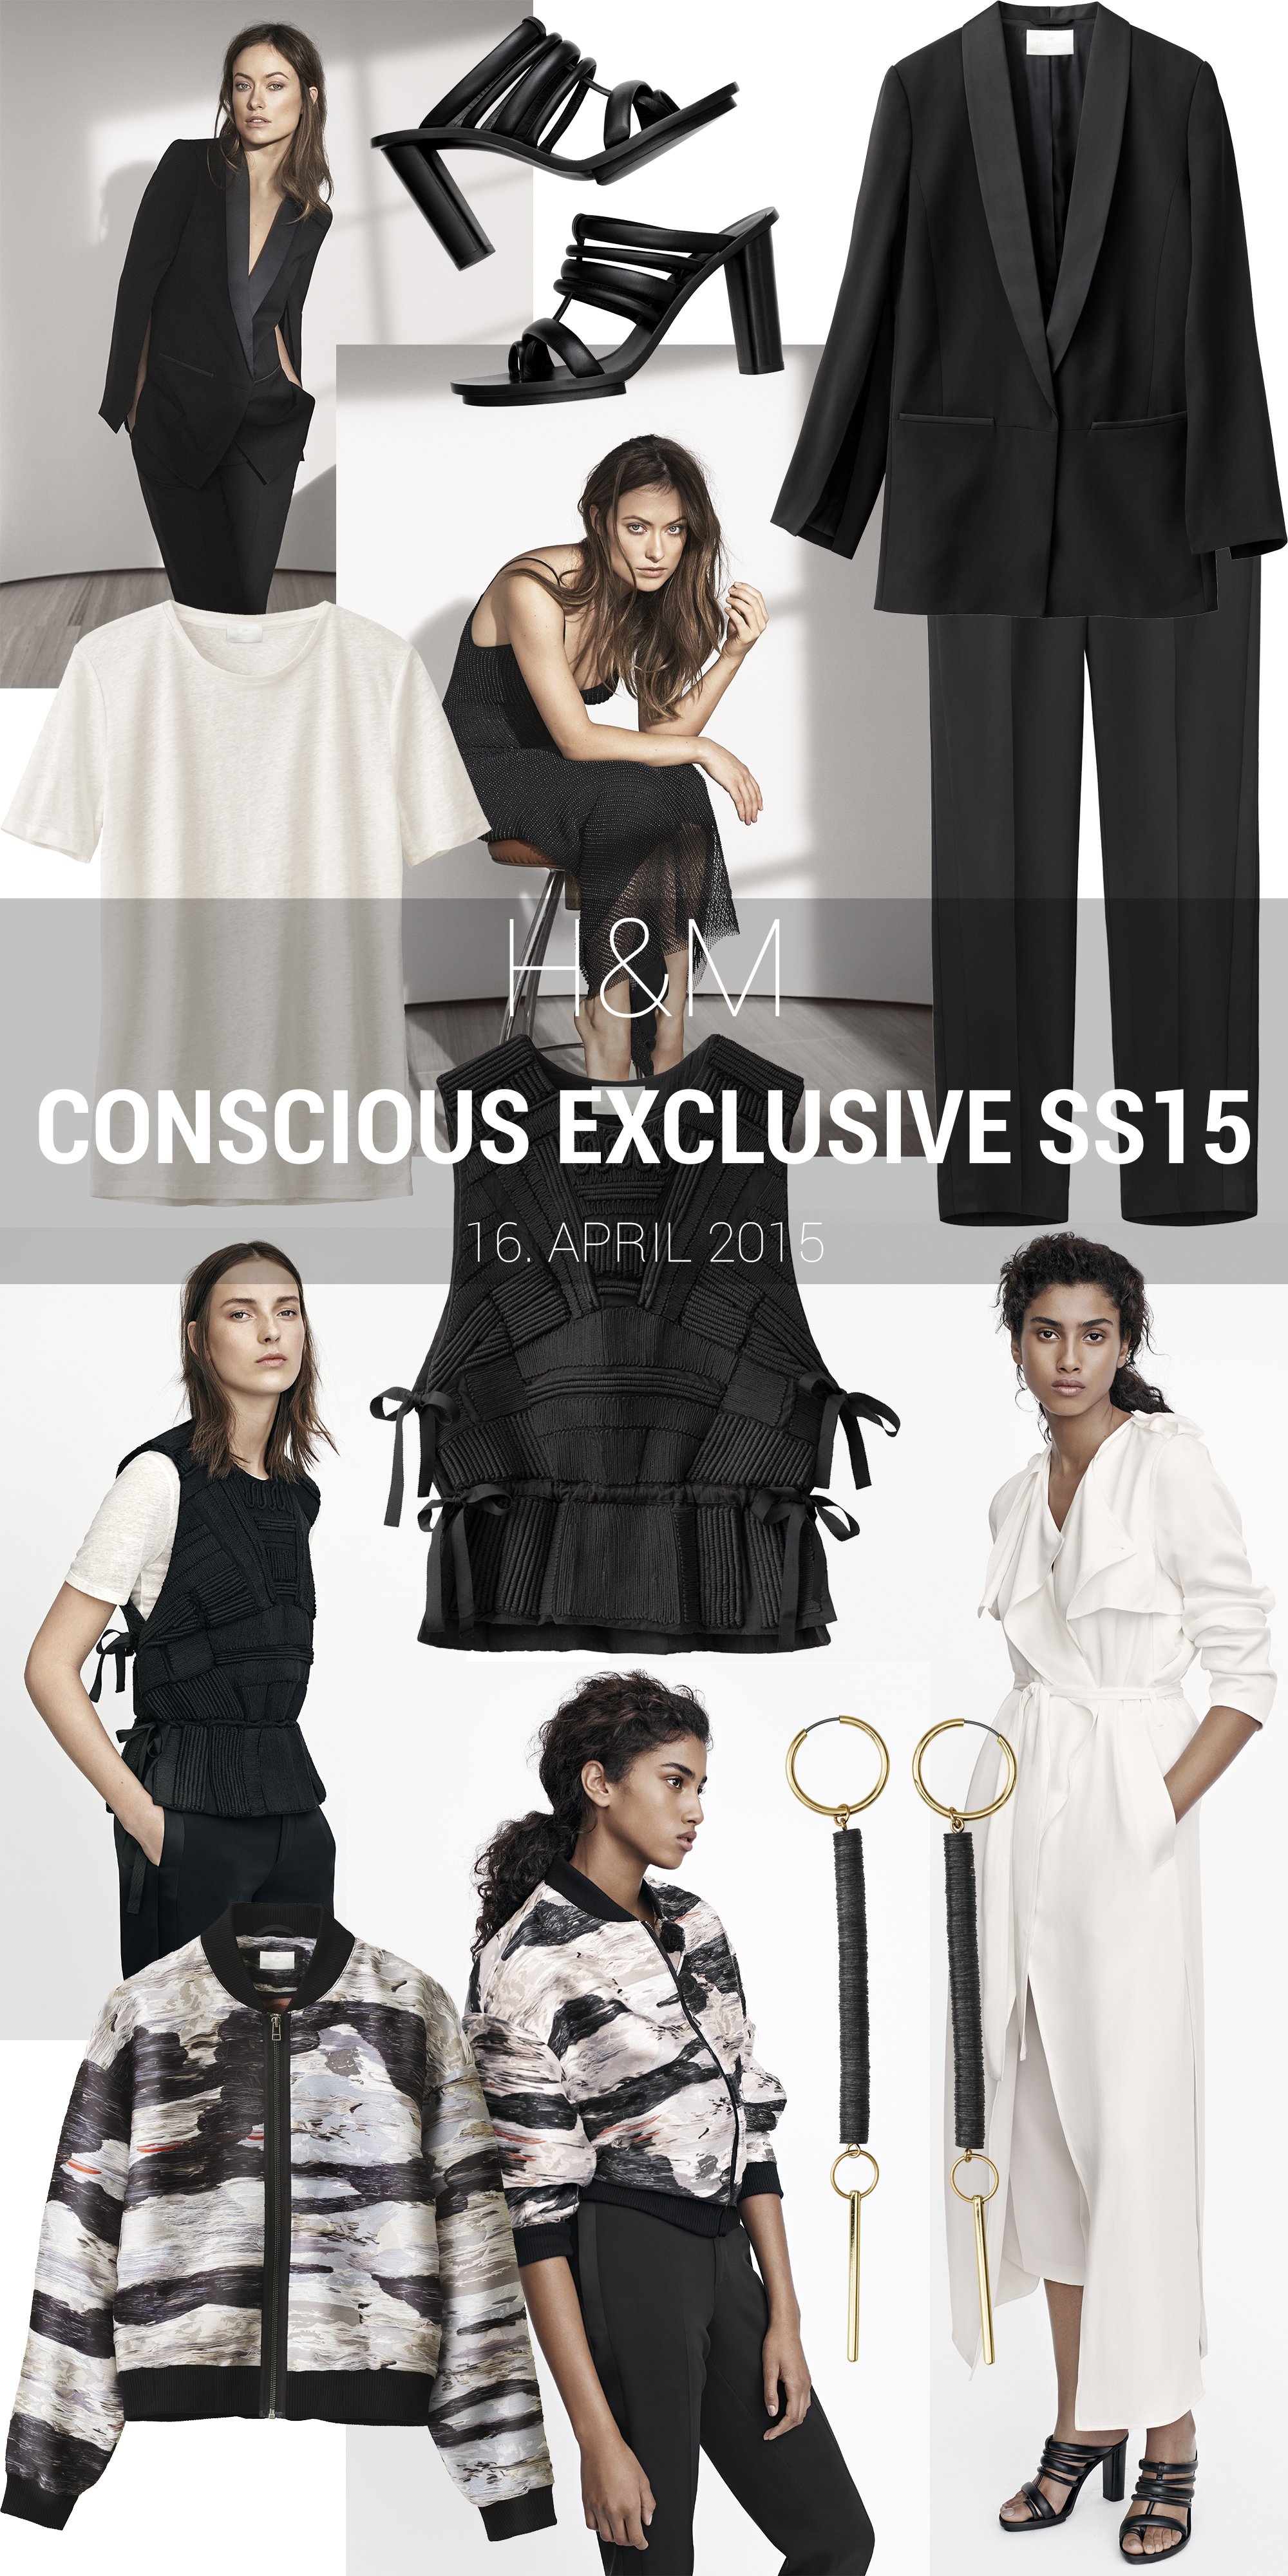 H&M Conscious Exclusive SS15